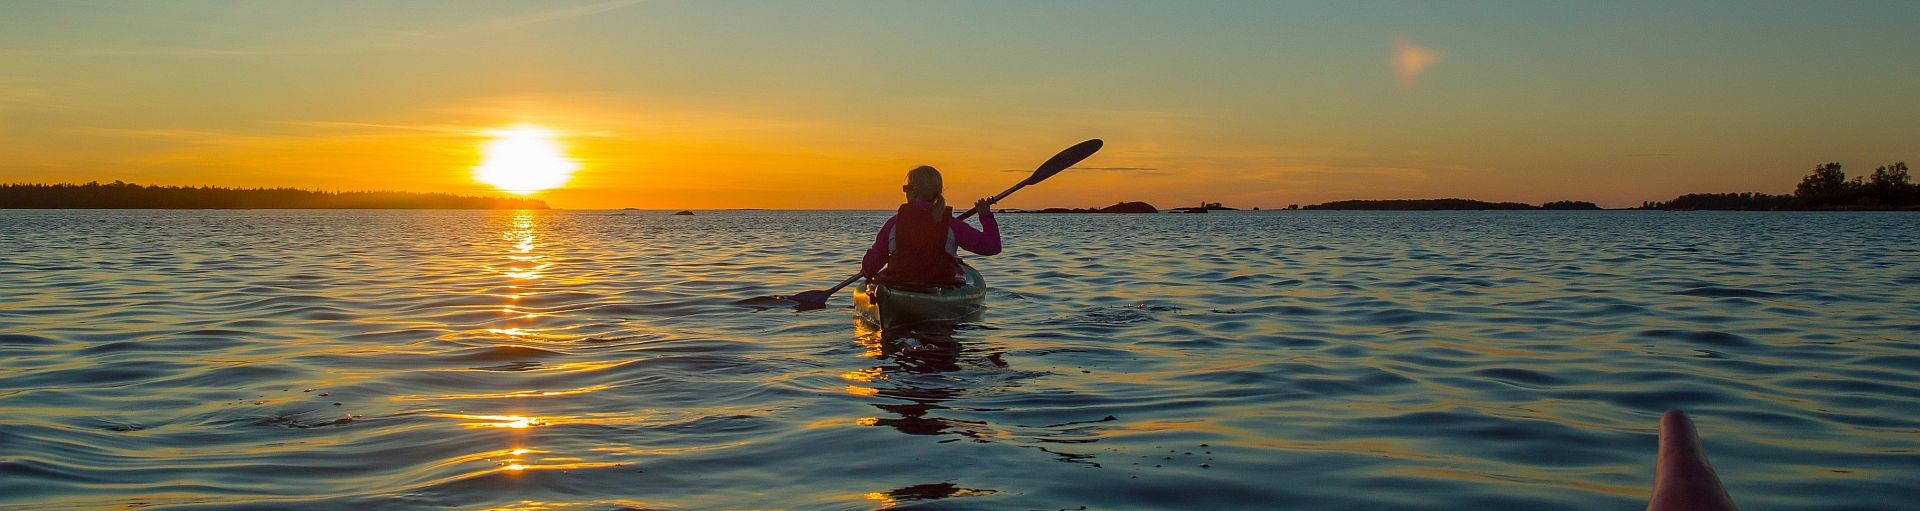 person paddling while the sun sets